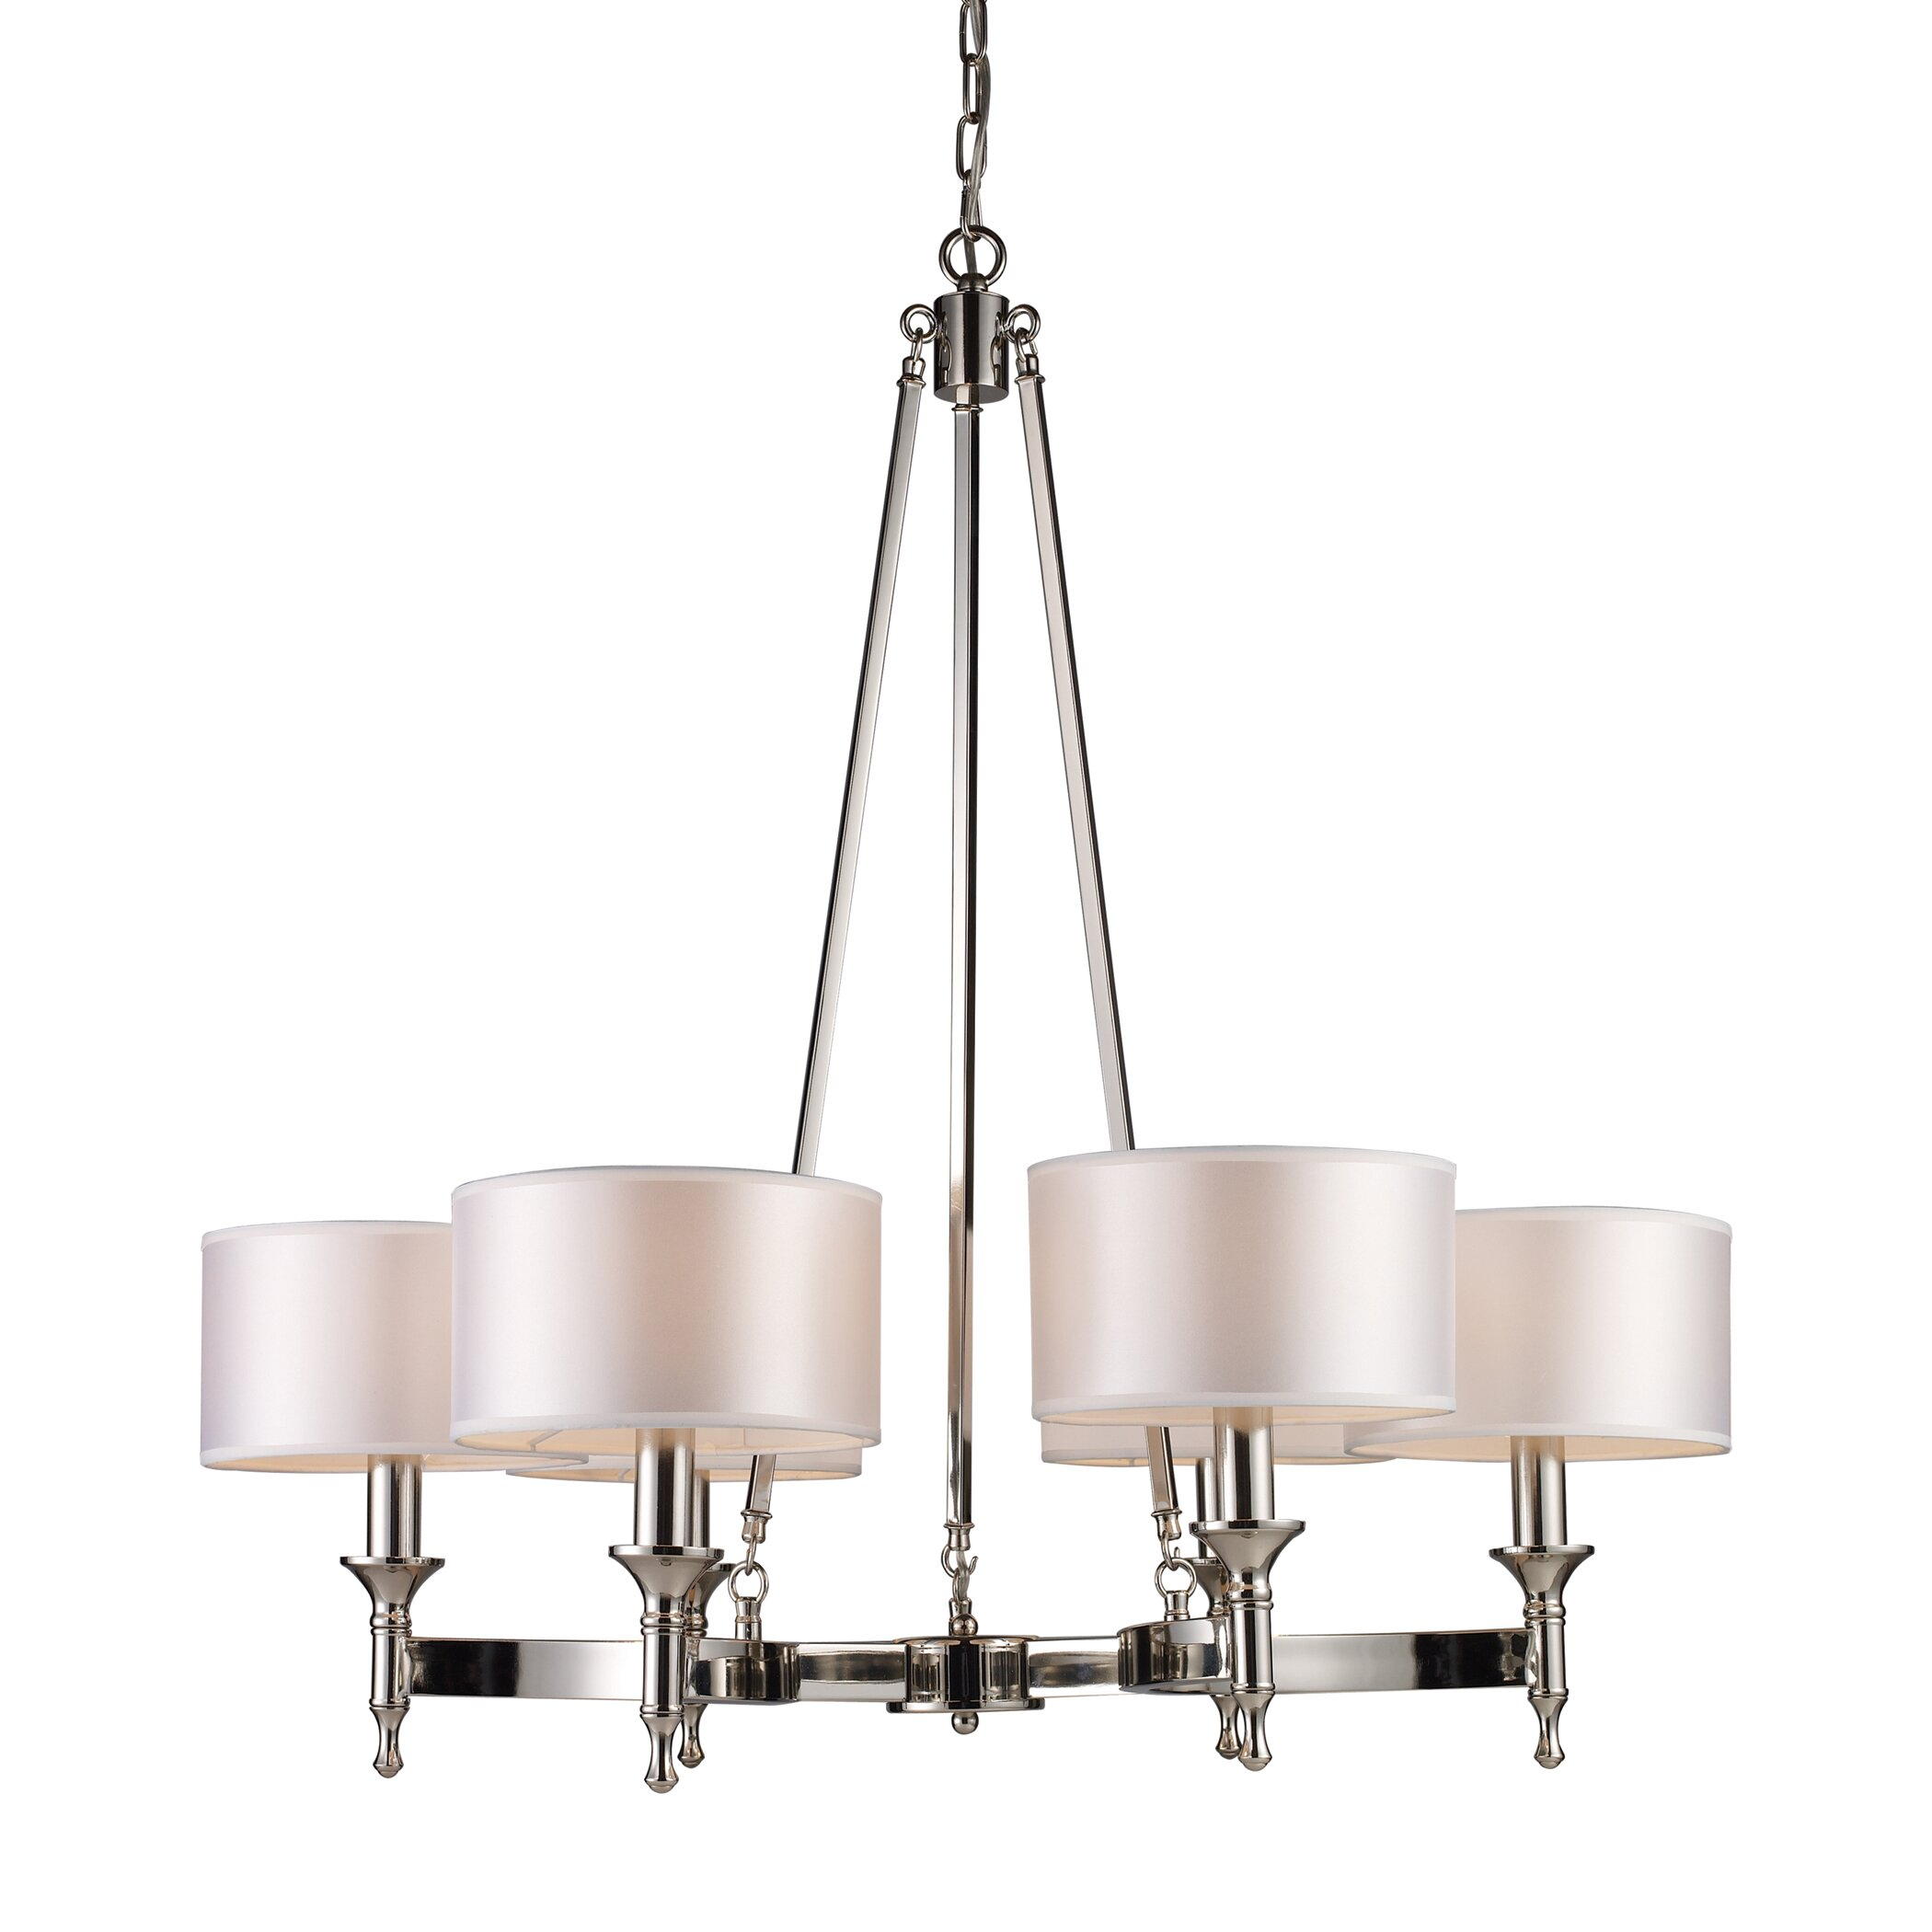 Darby home co watson 6 light drum chandelier reviews - Room chandelier ...